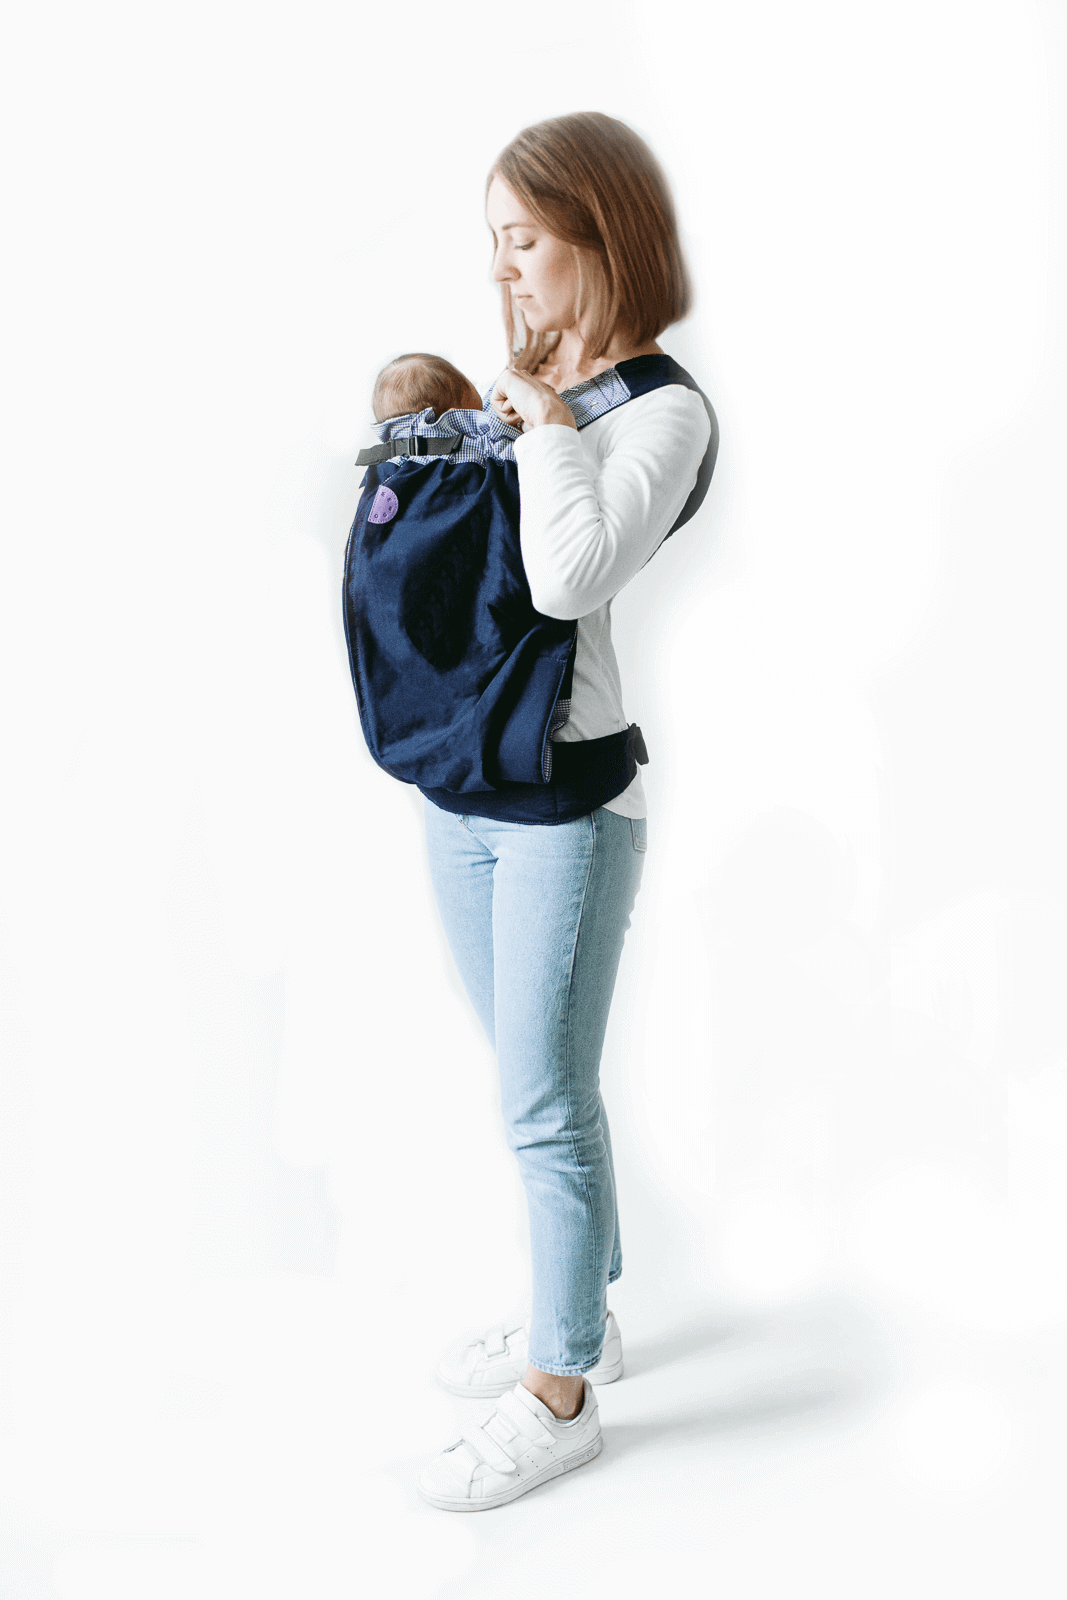 Weego ORIGINAL Baby Carrier